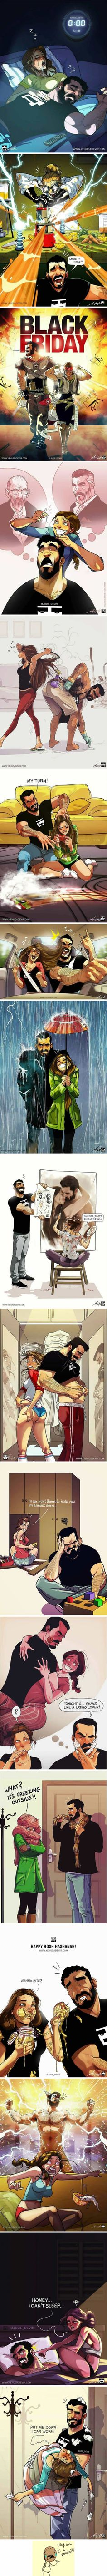 Artist Illustrates Everyday Life With His Wife In Comics